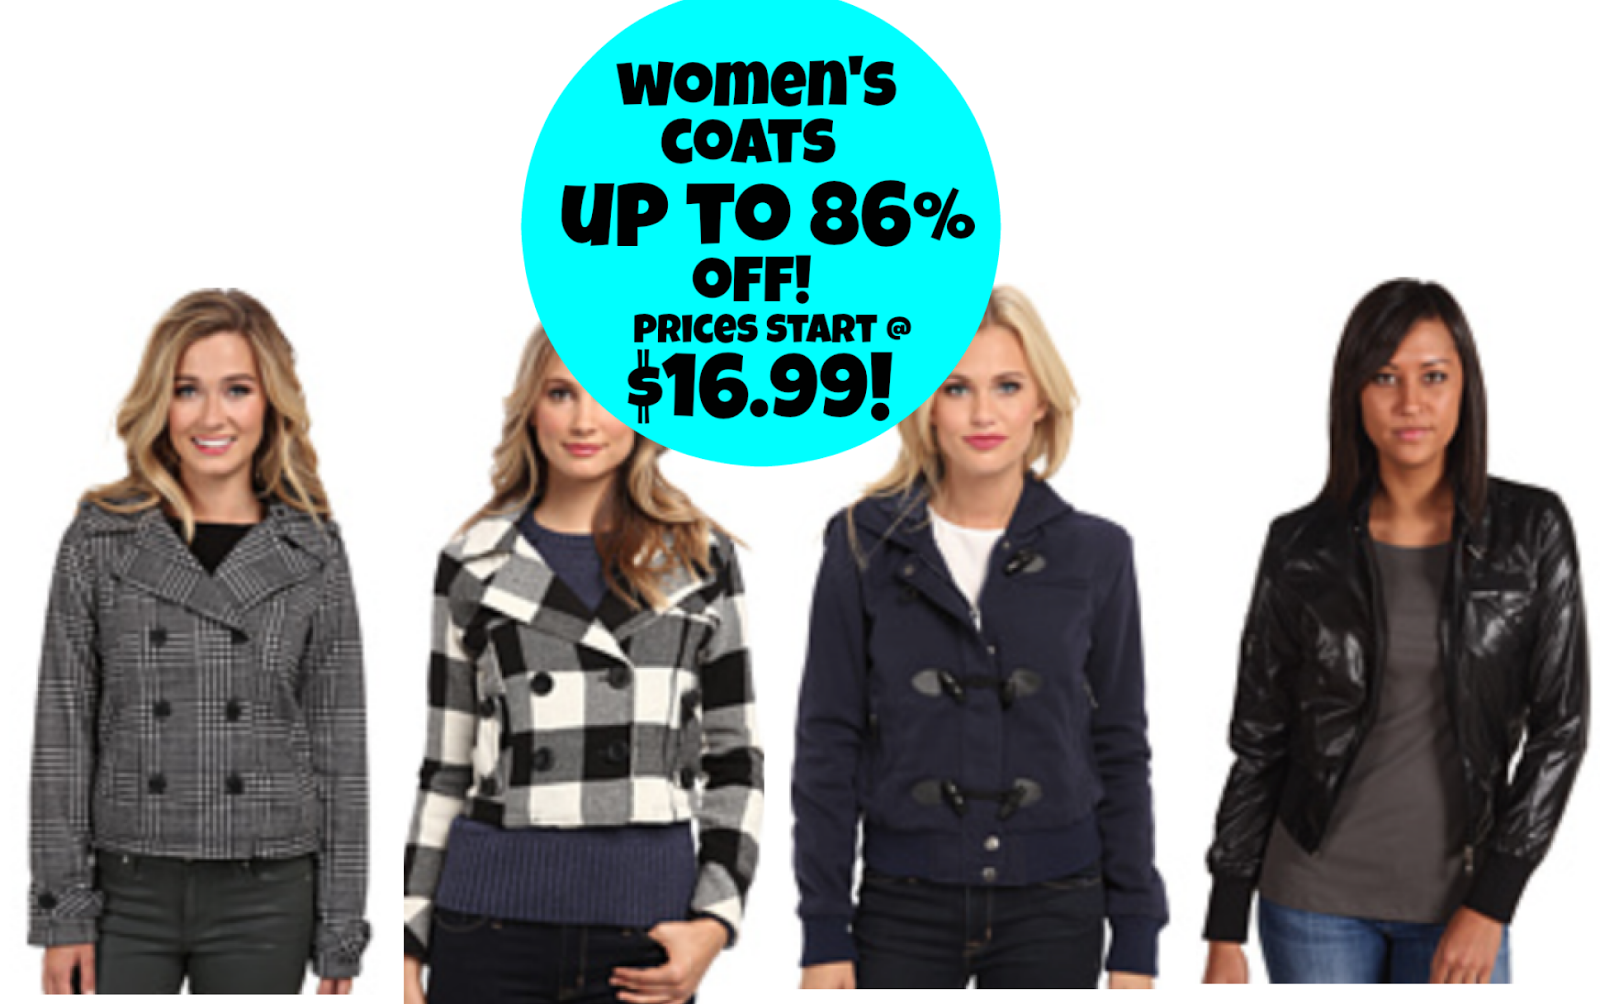 http://www.thebinderladies.com/2015/02/6pm-womens-coats-as-low-as-1699-free.html#.VOsyZULduyM